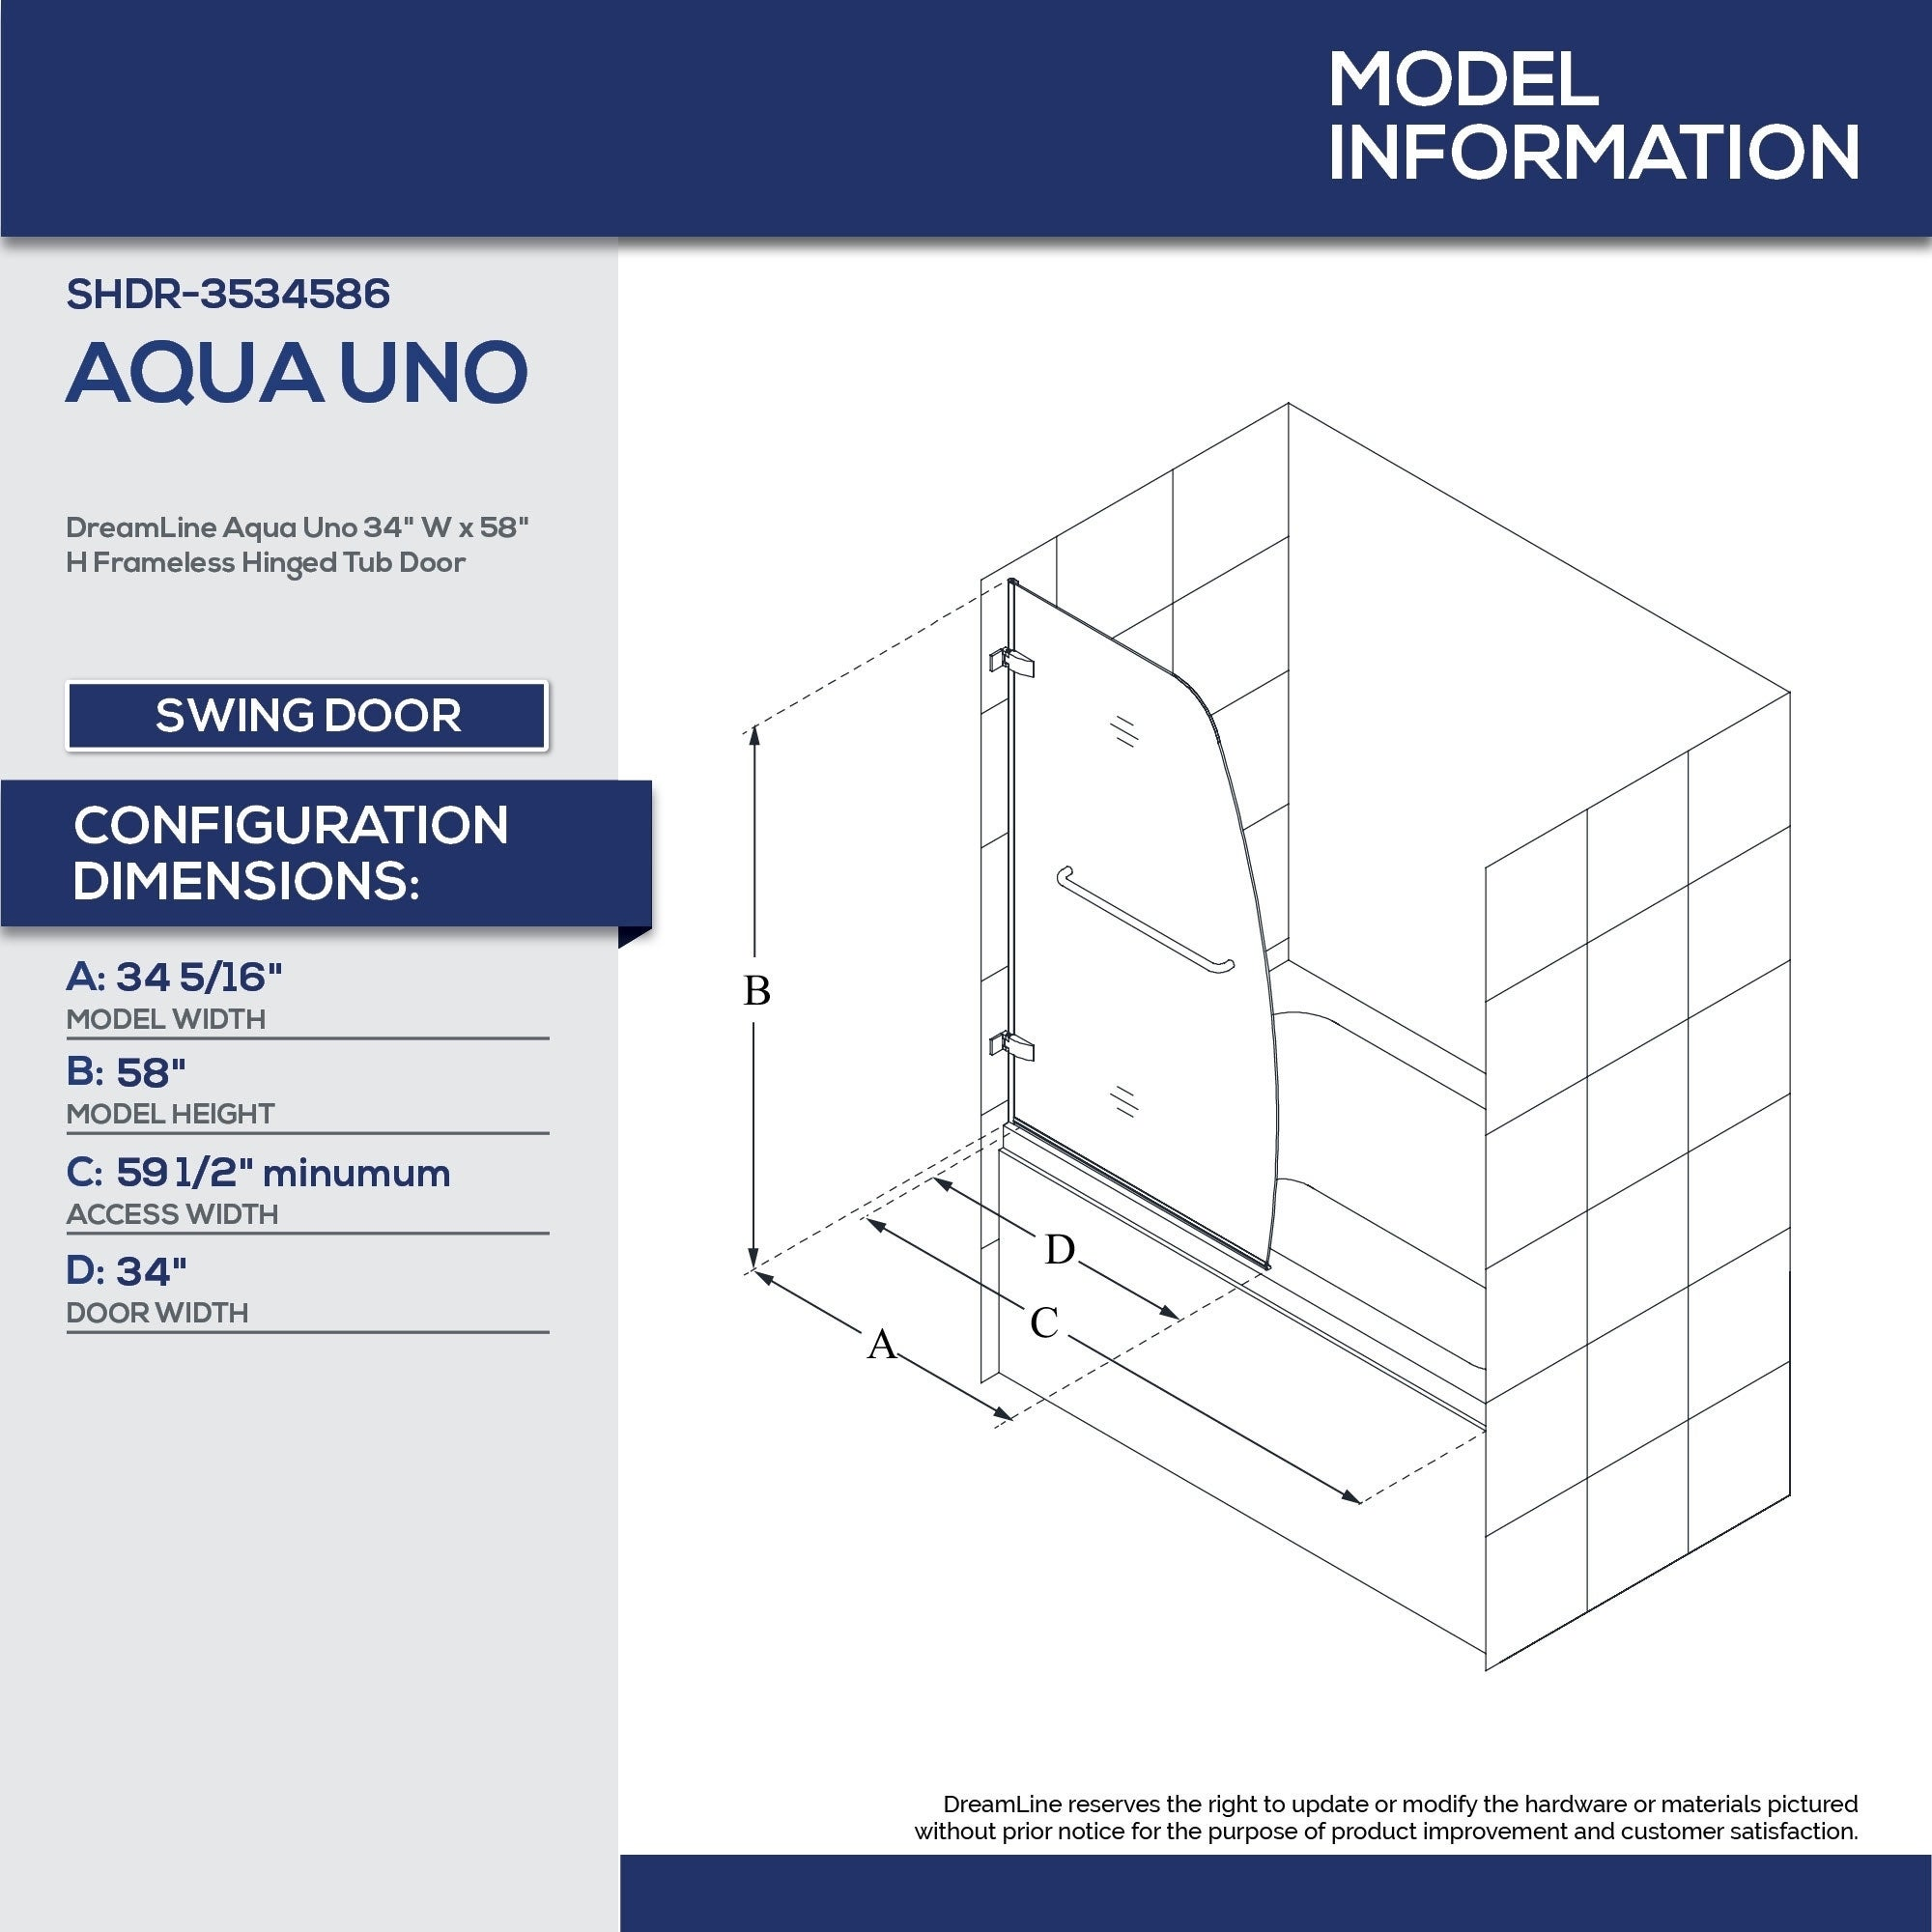 Shop DreamLine Aqua Uno 34 In. W X 58 In. H Frameless Hinged Tub Door    34.31 In. W X 58 In. H   Free Shipping Today   Overstock.com   6091798